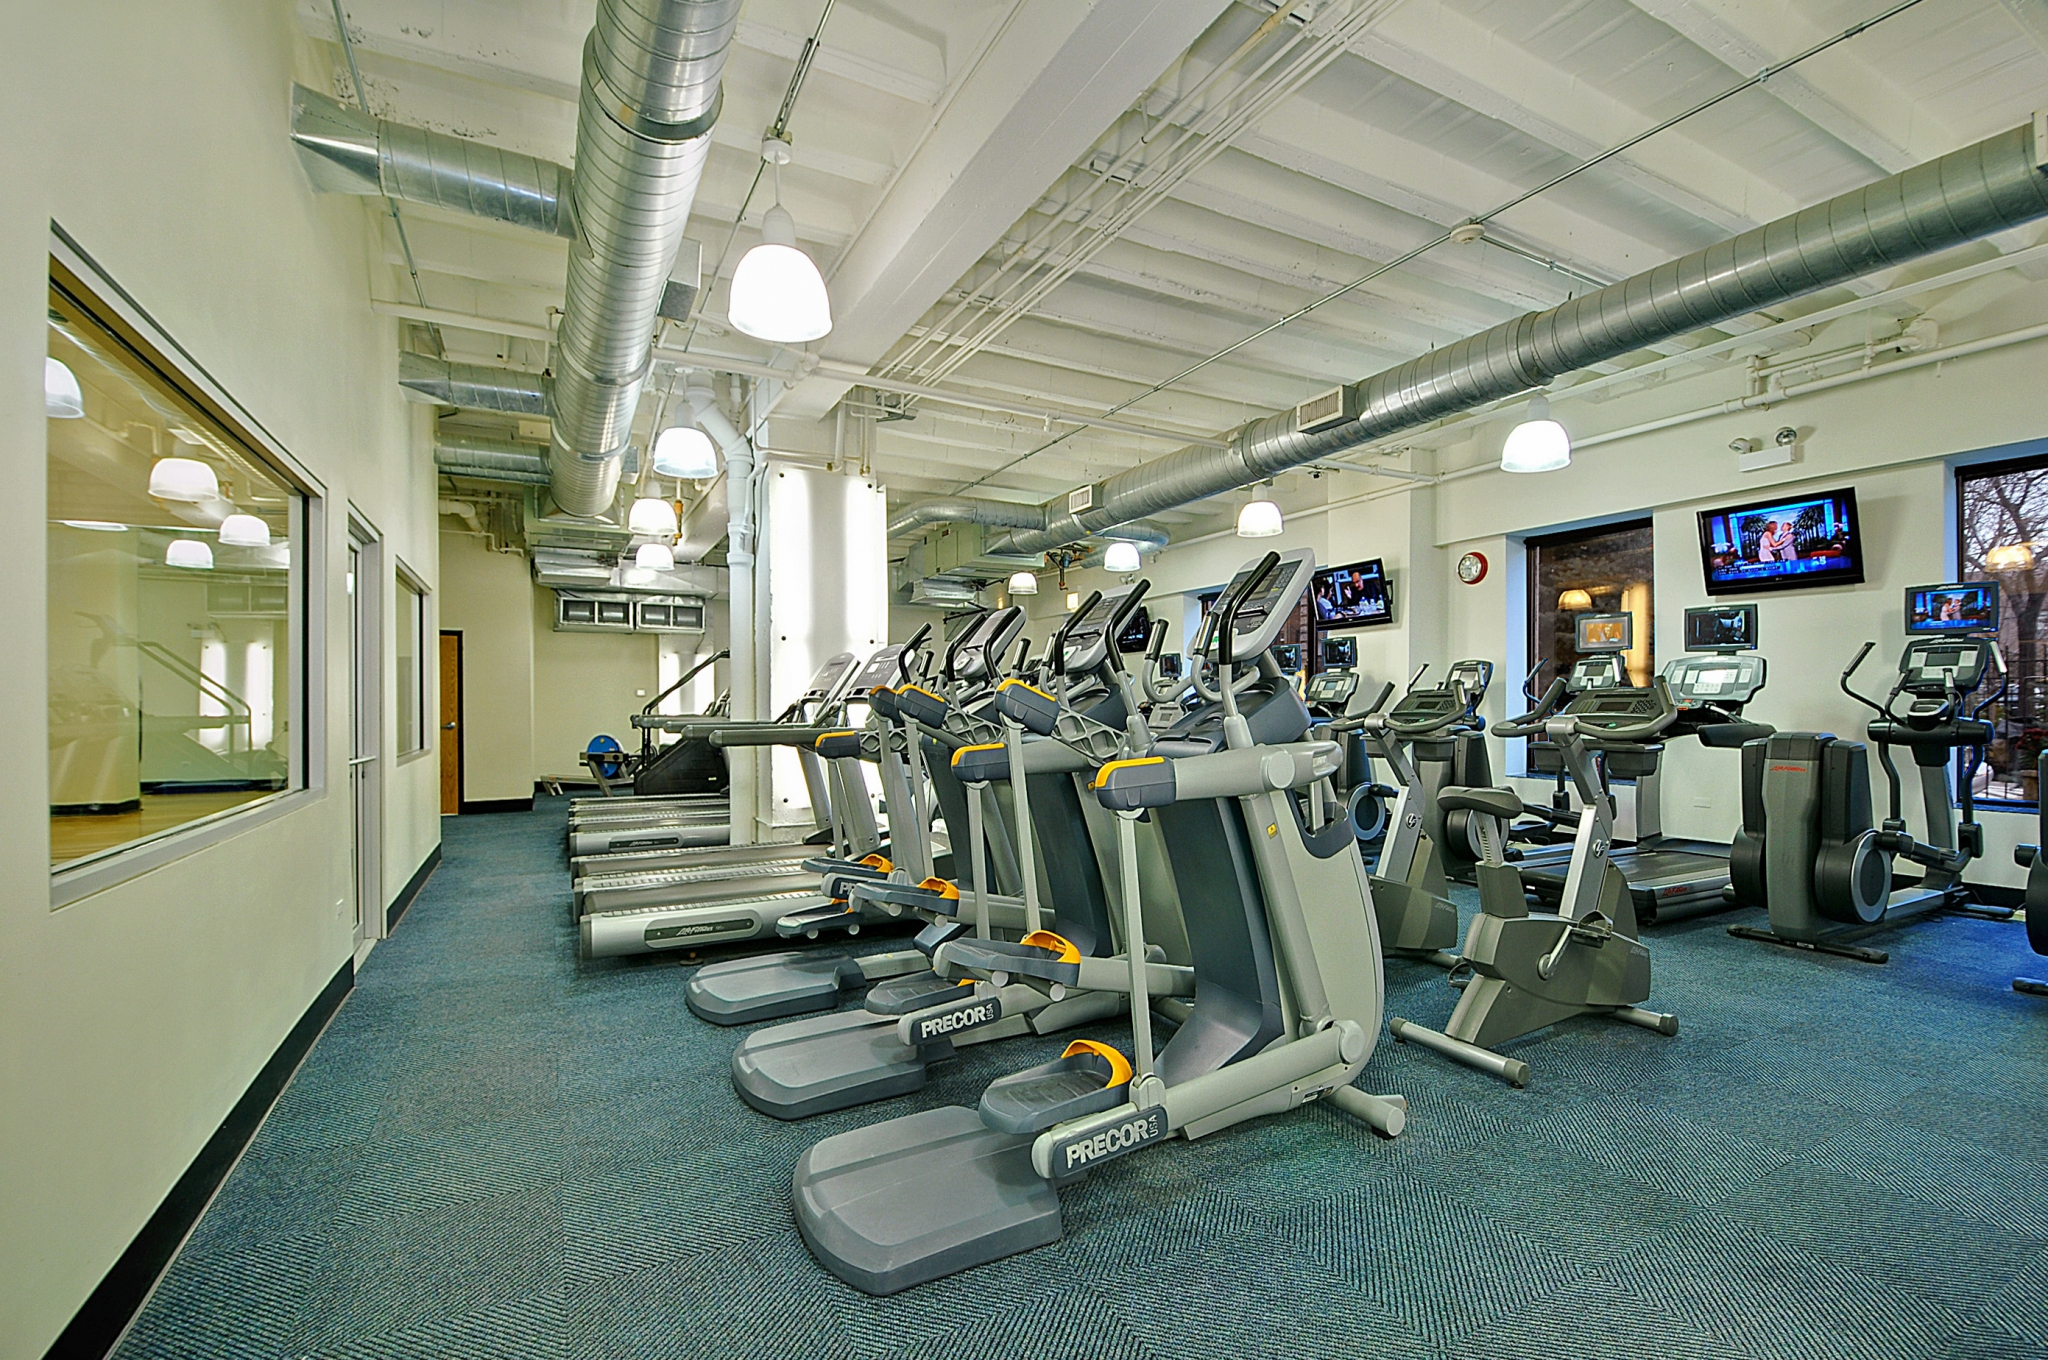 Fitness center in Edgewater Chicago, IL apartments